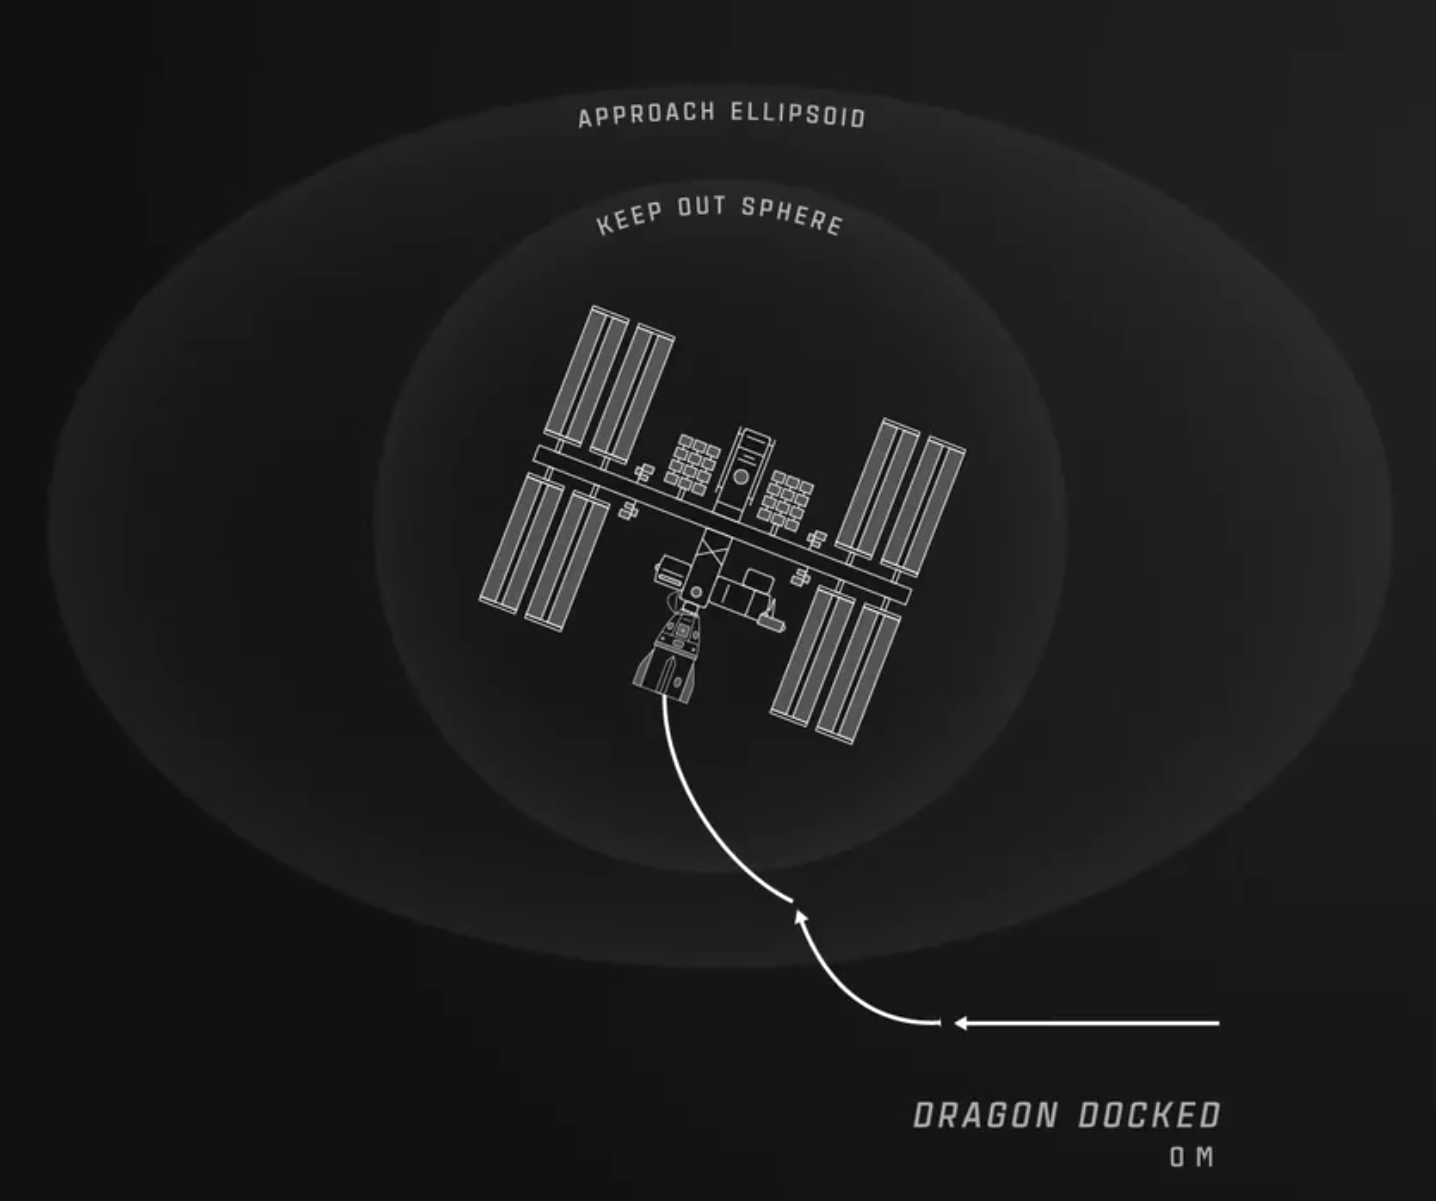 Map showing Crew Dragon's flight path to dock with the International Space Station. Image credit: SpaceX